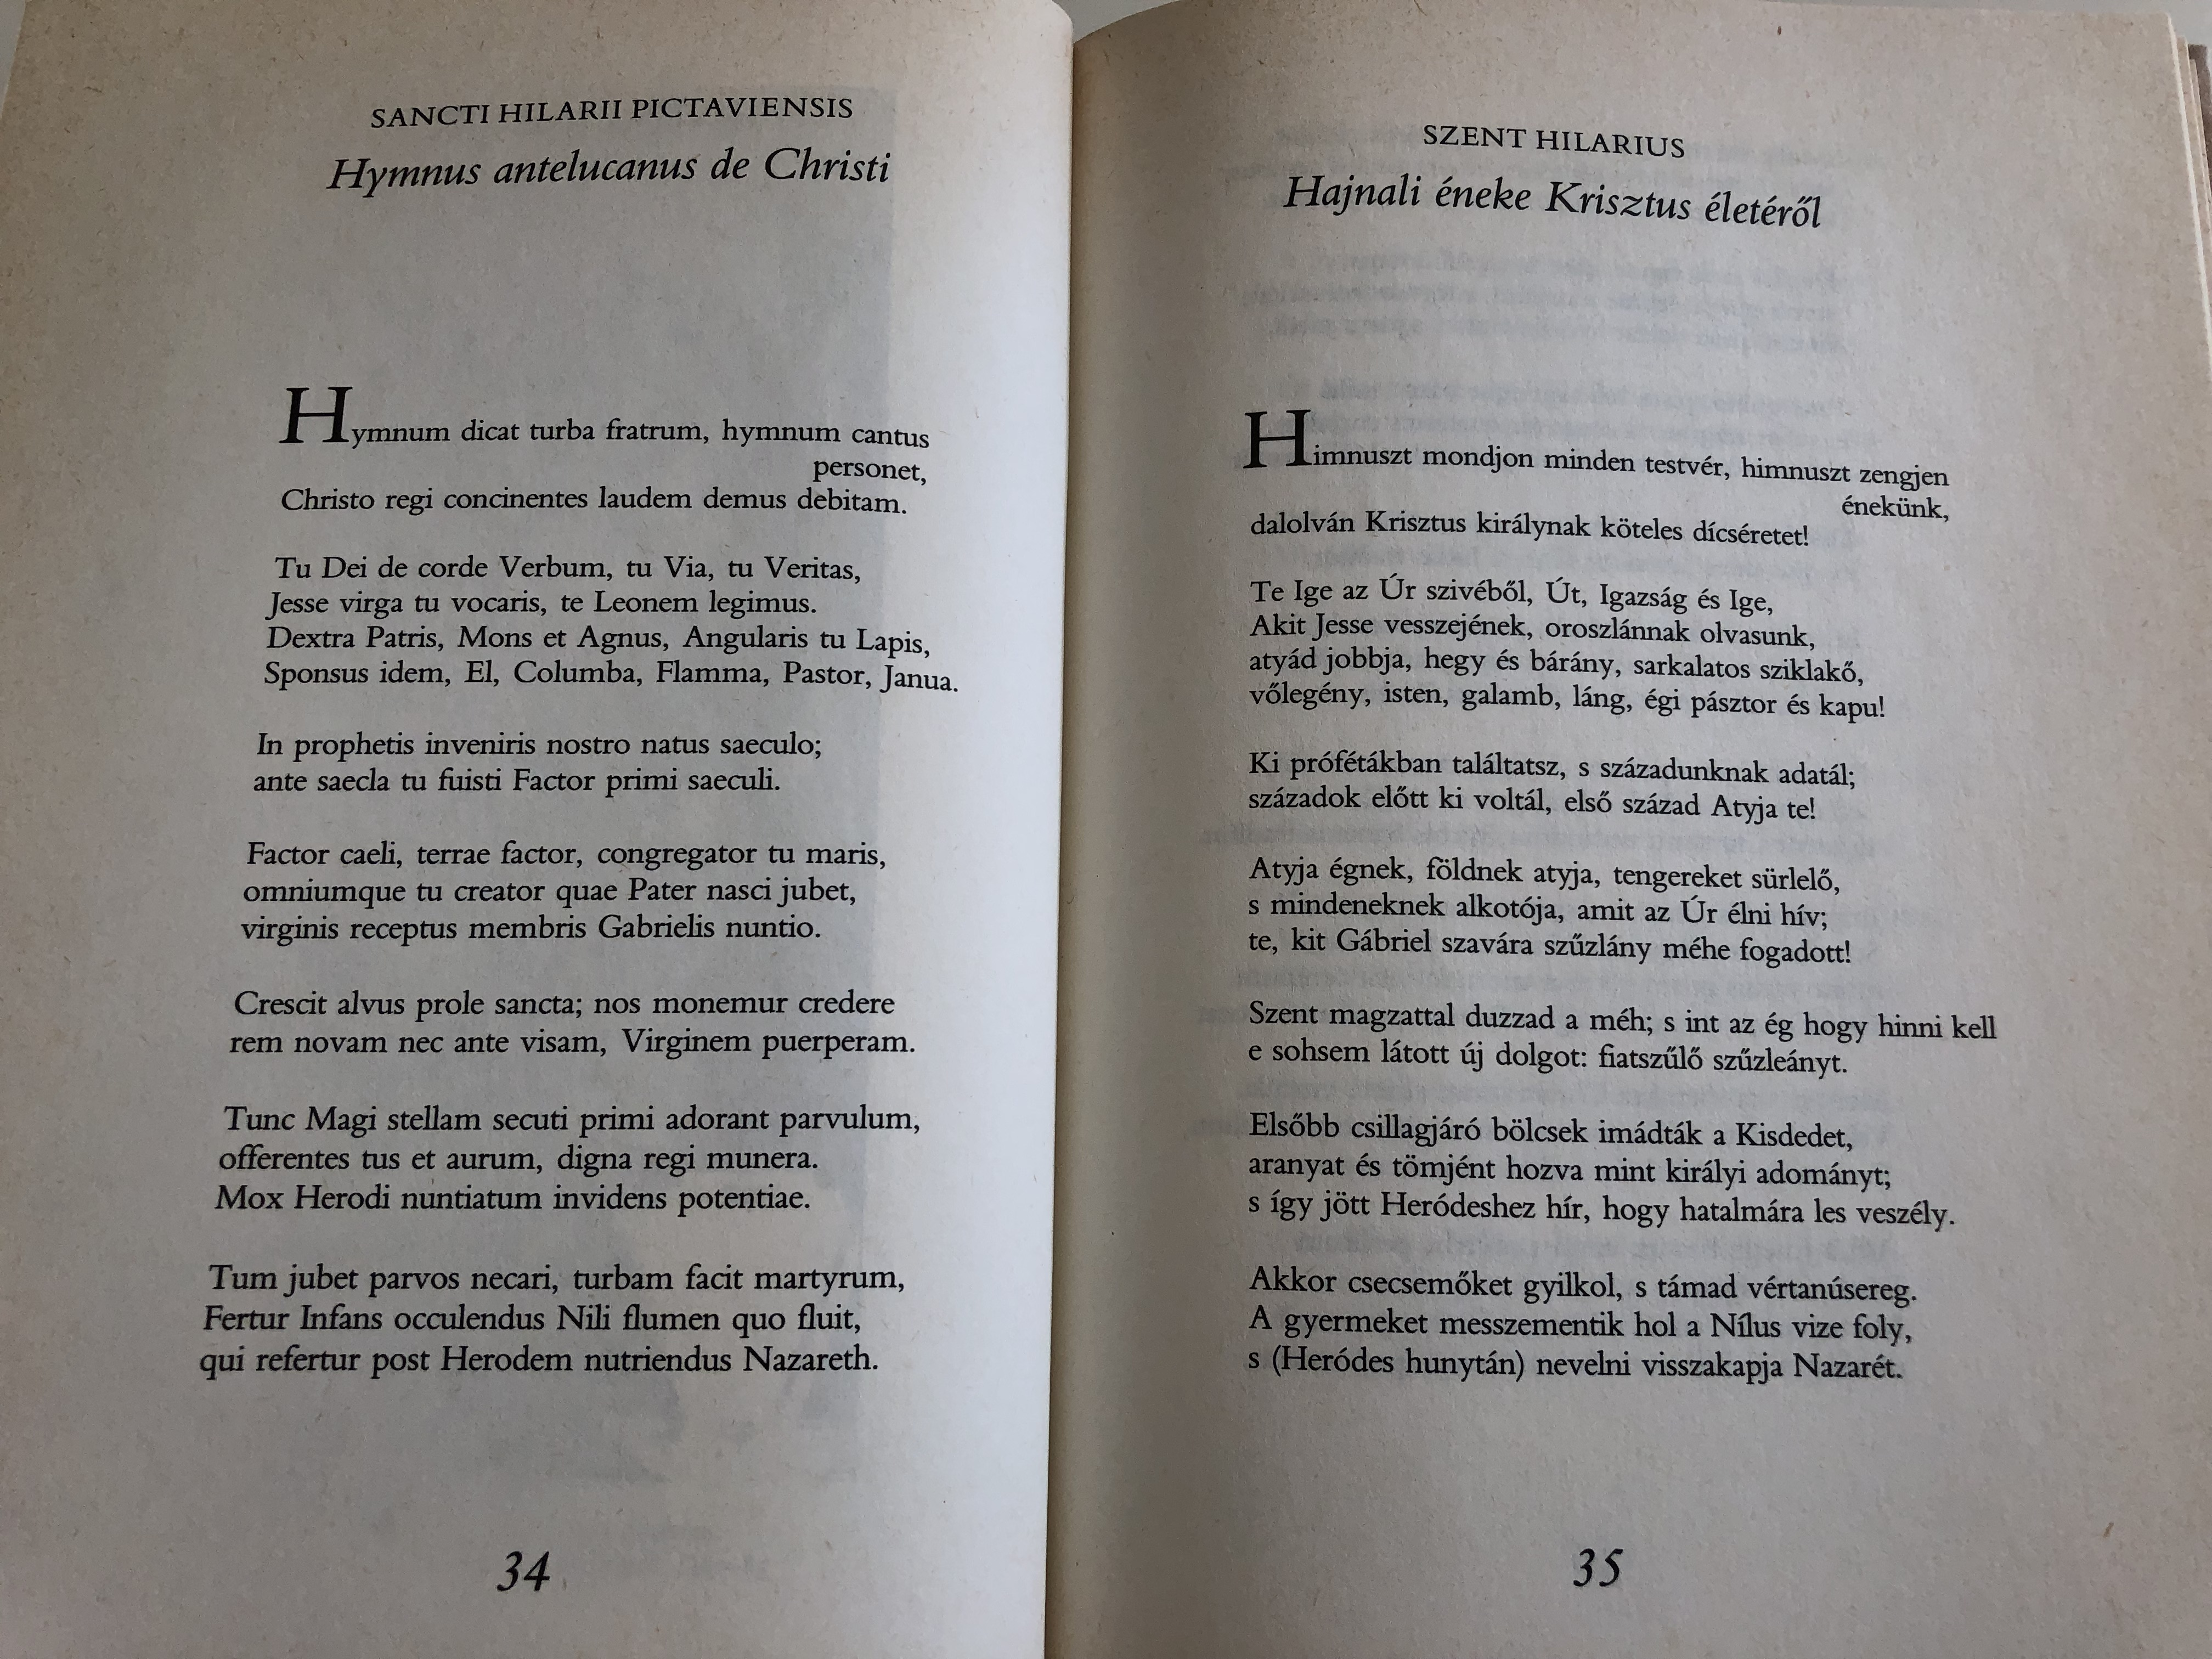 amor-sanctus-medieval-hymns-in-latin-and-hungarian-szent-szeretet-k-nyve-translated-and-interpreted-by-babits-mih-ly-k-z-pkori-himnuszok-latinul-s-magyarul-hardcover-1988-helikon-he213-8-.jpg